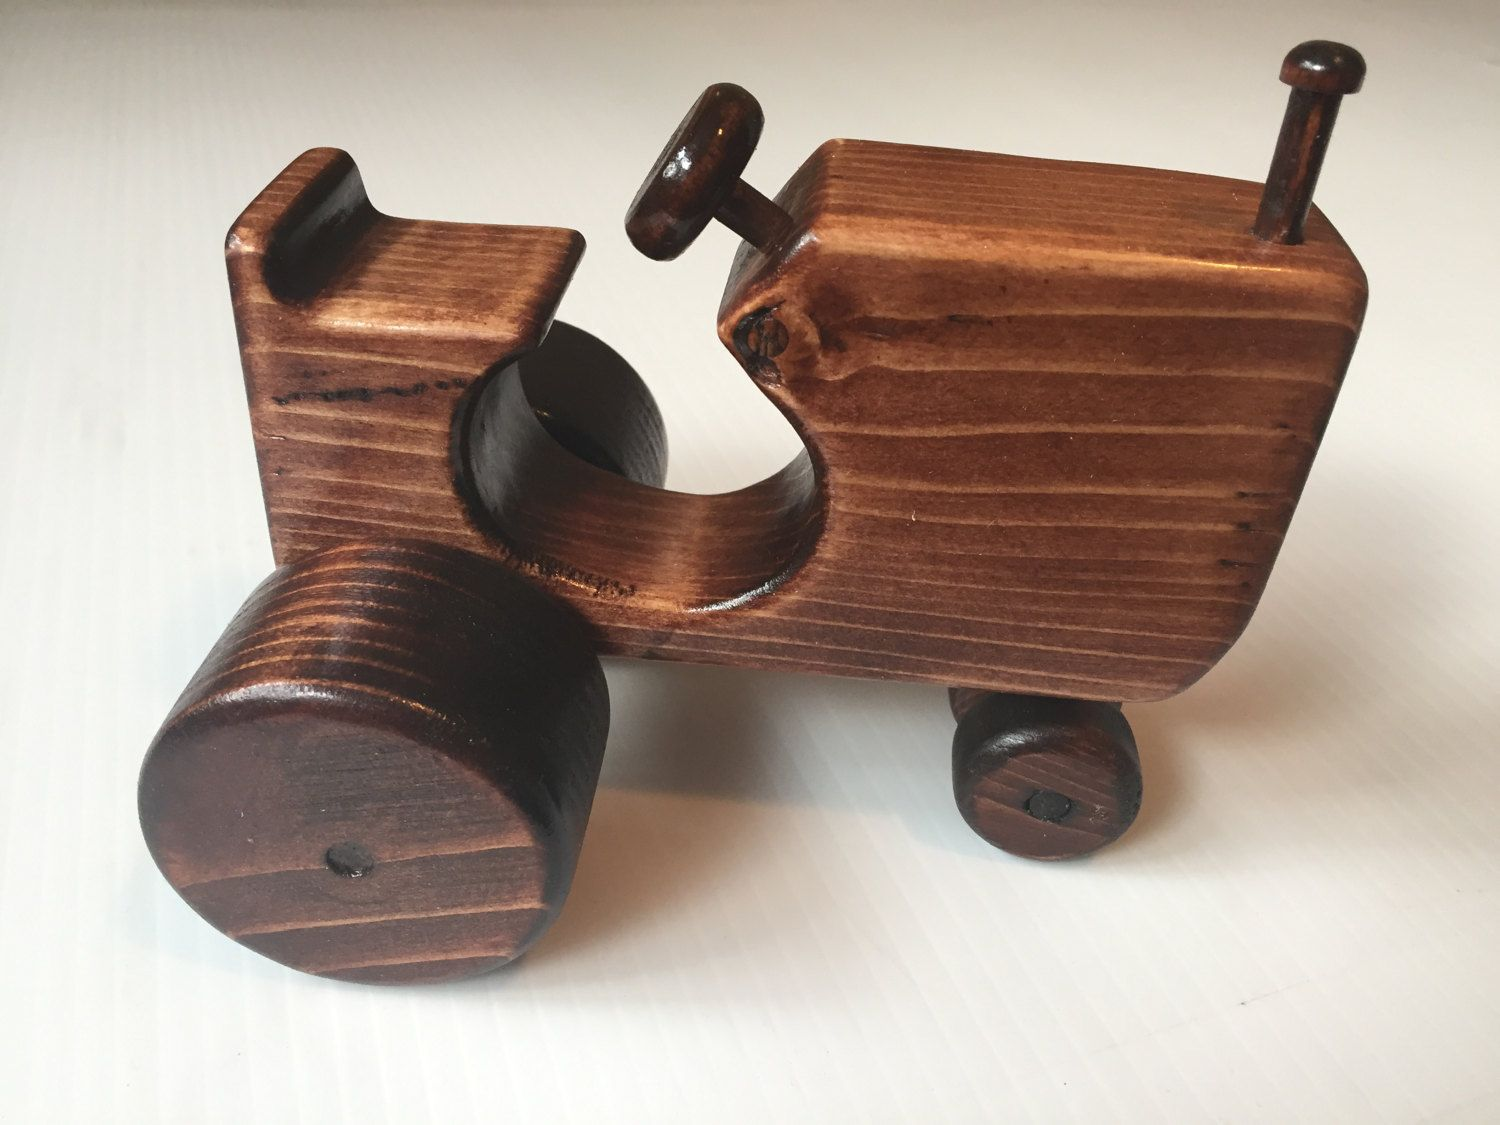 Car toys for toddlers  Wooden Toy Tractor  wooden toy wooden toy car toys for boys